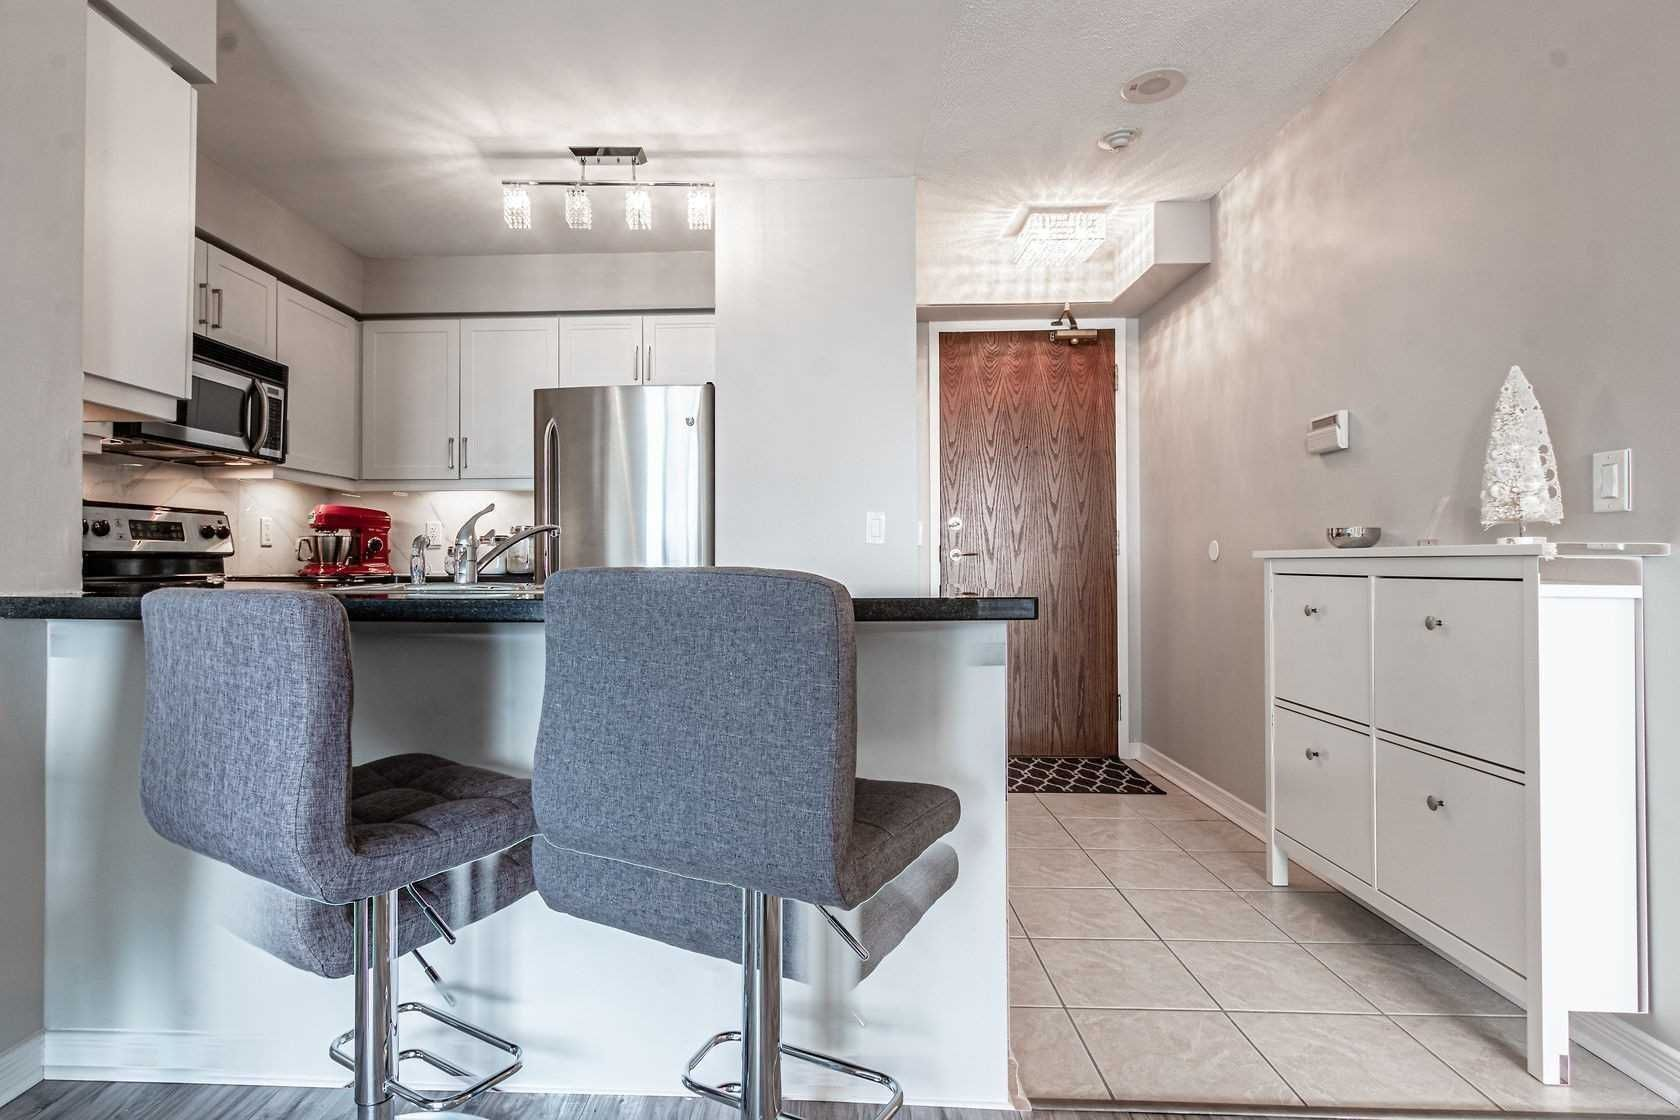 4889 Kimbermount Ave, unit 1706 for rent in Toronto - image #1